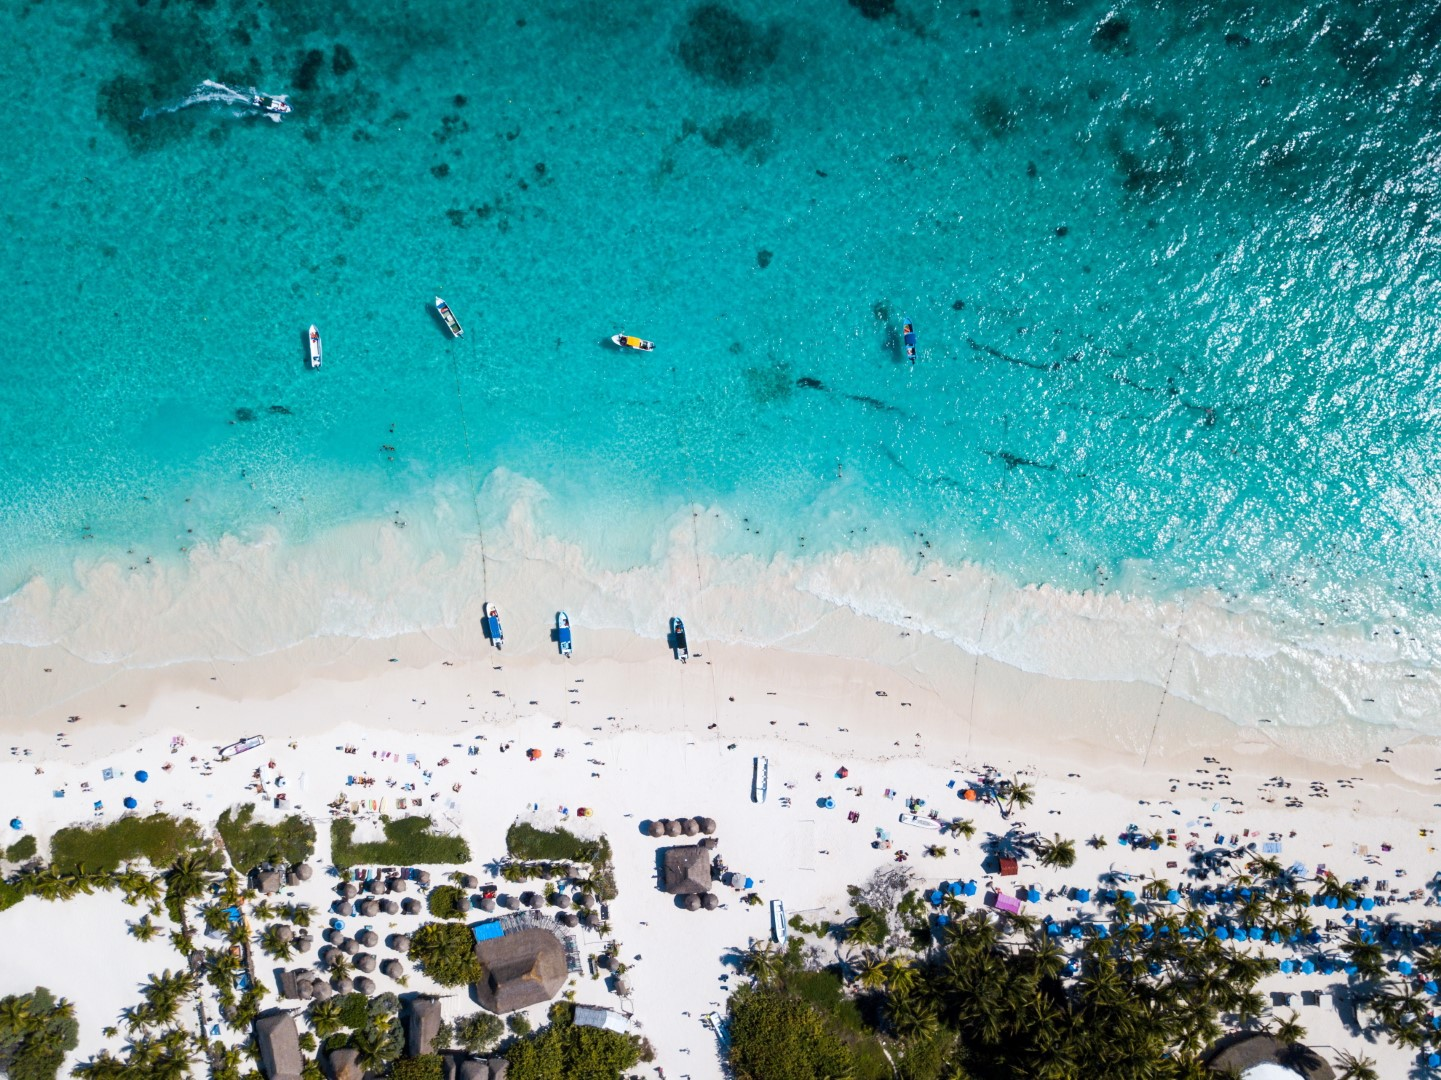 View from above of Tulum beach